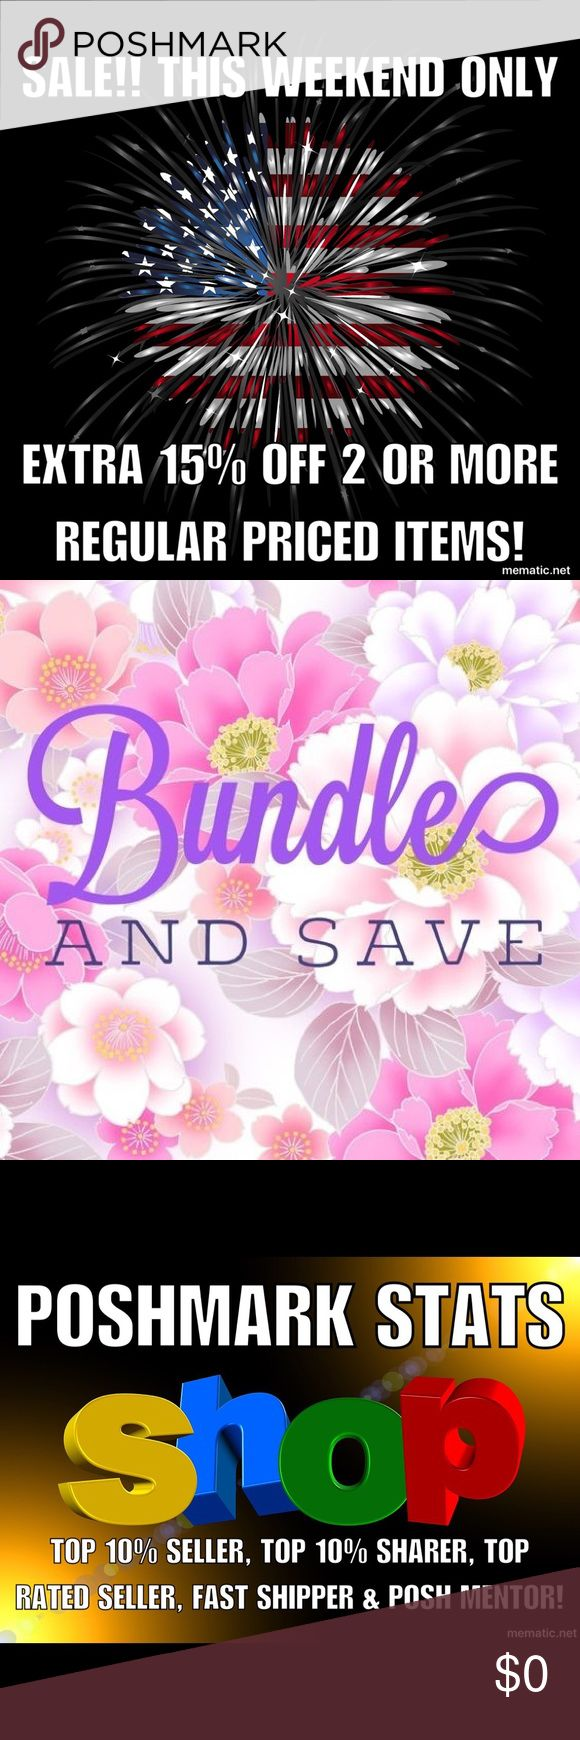 4th of July SALE this weekend only! Extra 15% off! Celebrating 4th of July with a bundle discount of 15% off 2 or more REGULAR PRICED ITEMS! No limit! Get that special something you've been looking for! Hurry sale ends midnight of July 4th! Feel free to ask me questions. Thanks for visiting my closet!!! Other